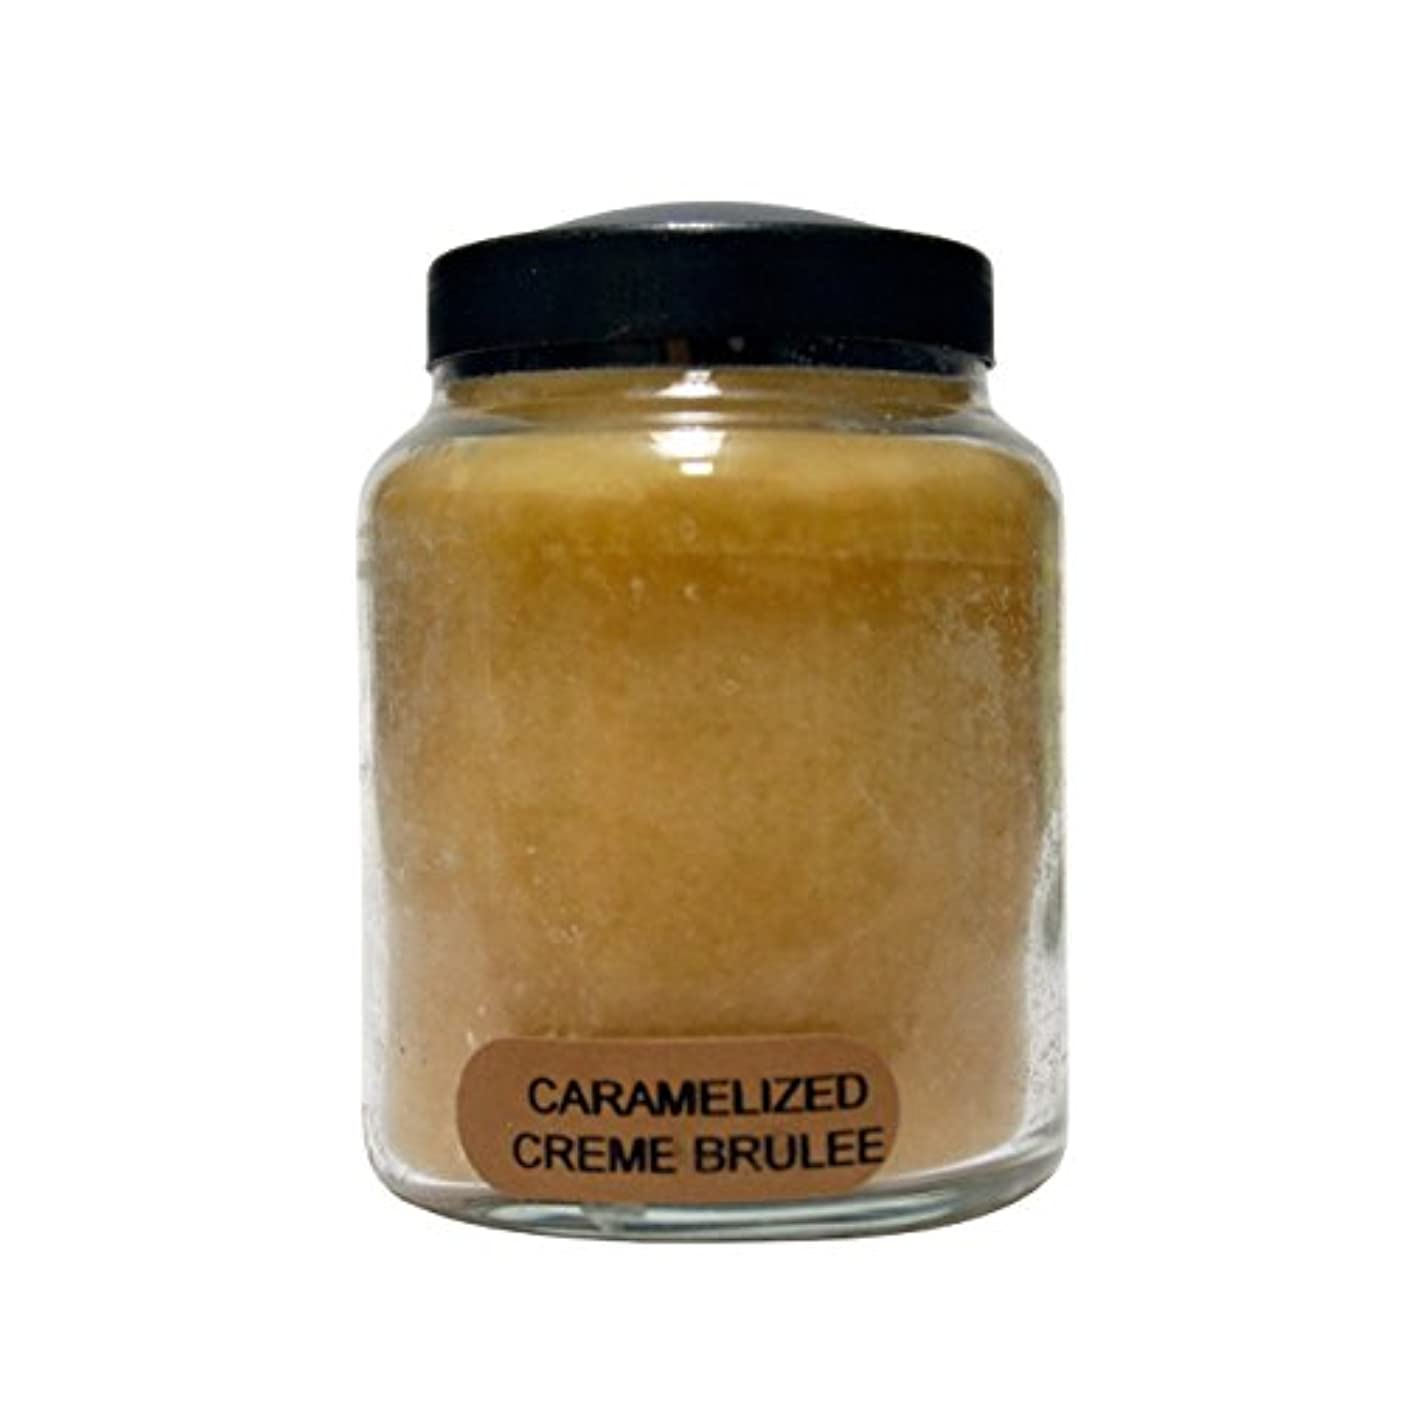 伝記ブレーク鎖A Cheerful Giver Caramelized Creme Brulee Baby Jar Candle, 6-Ounce [並行輸入品]